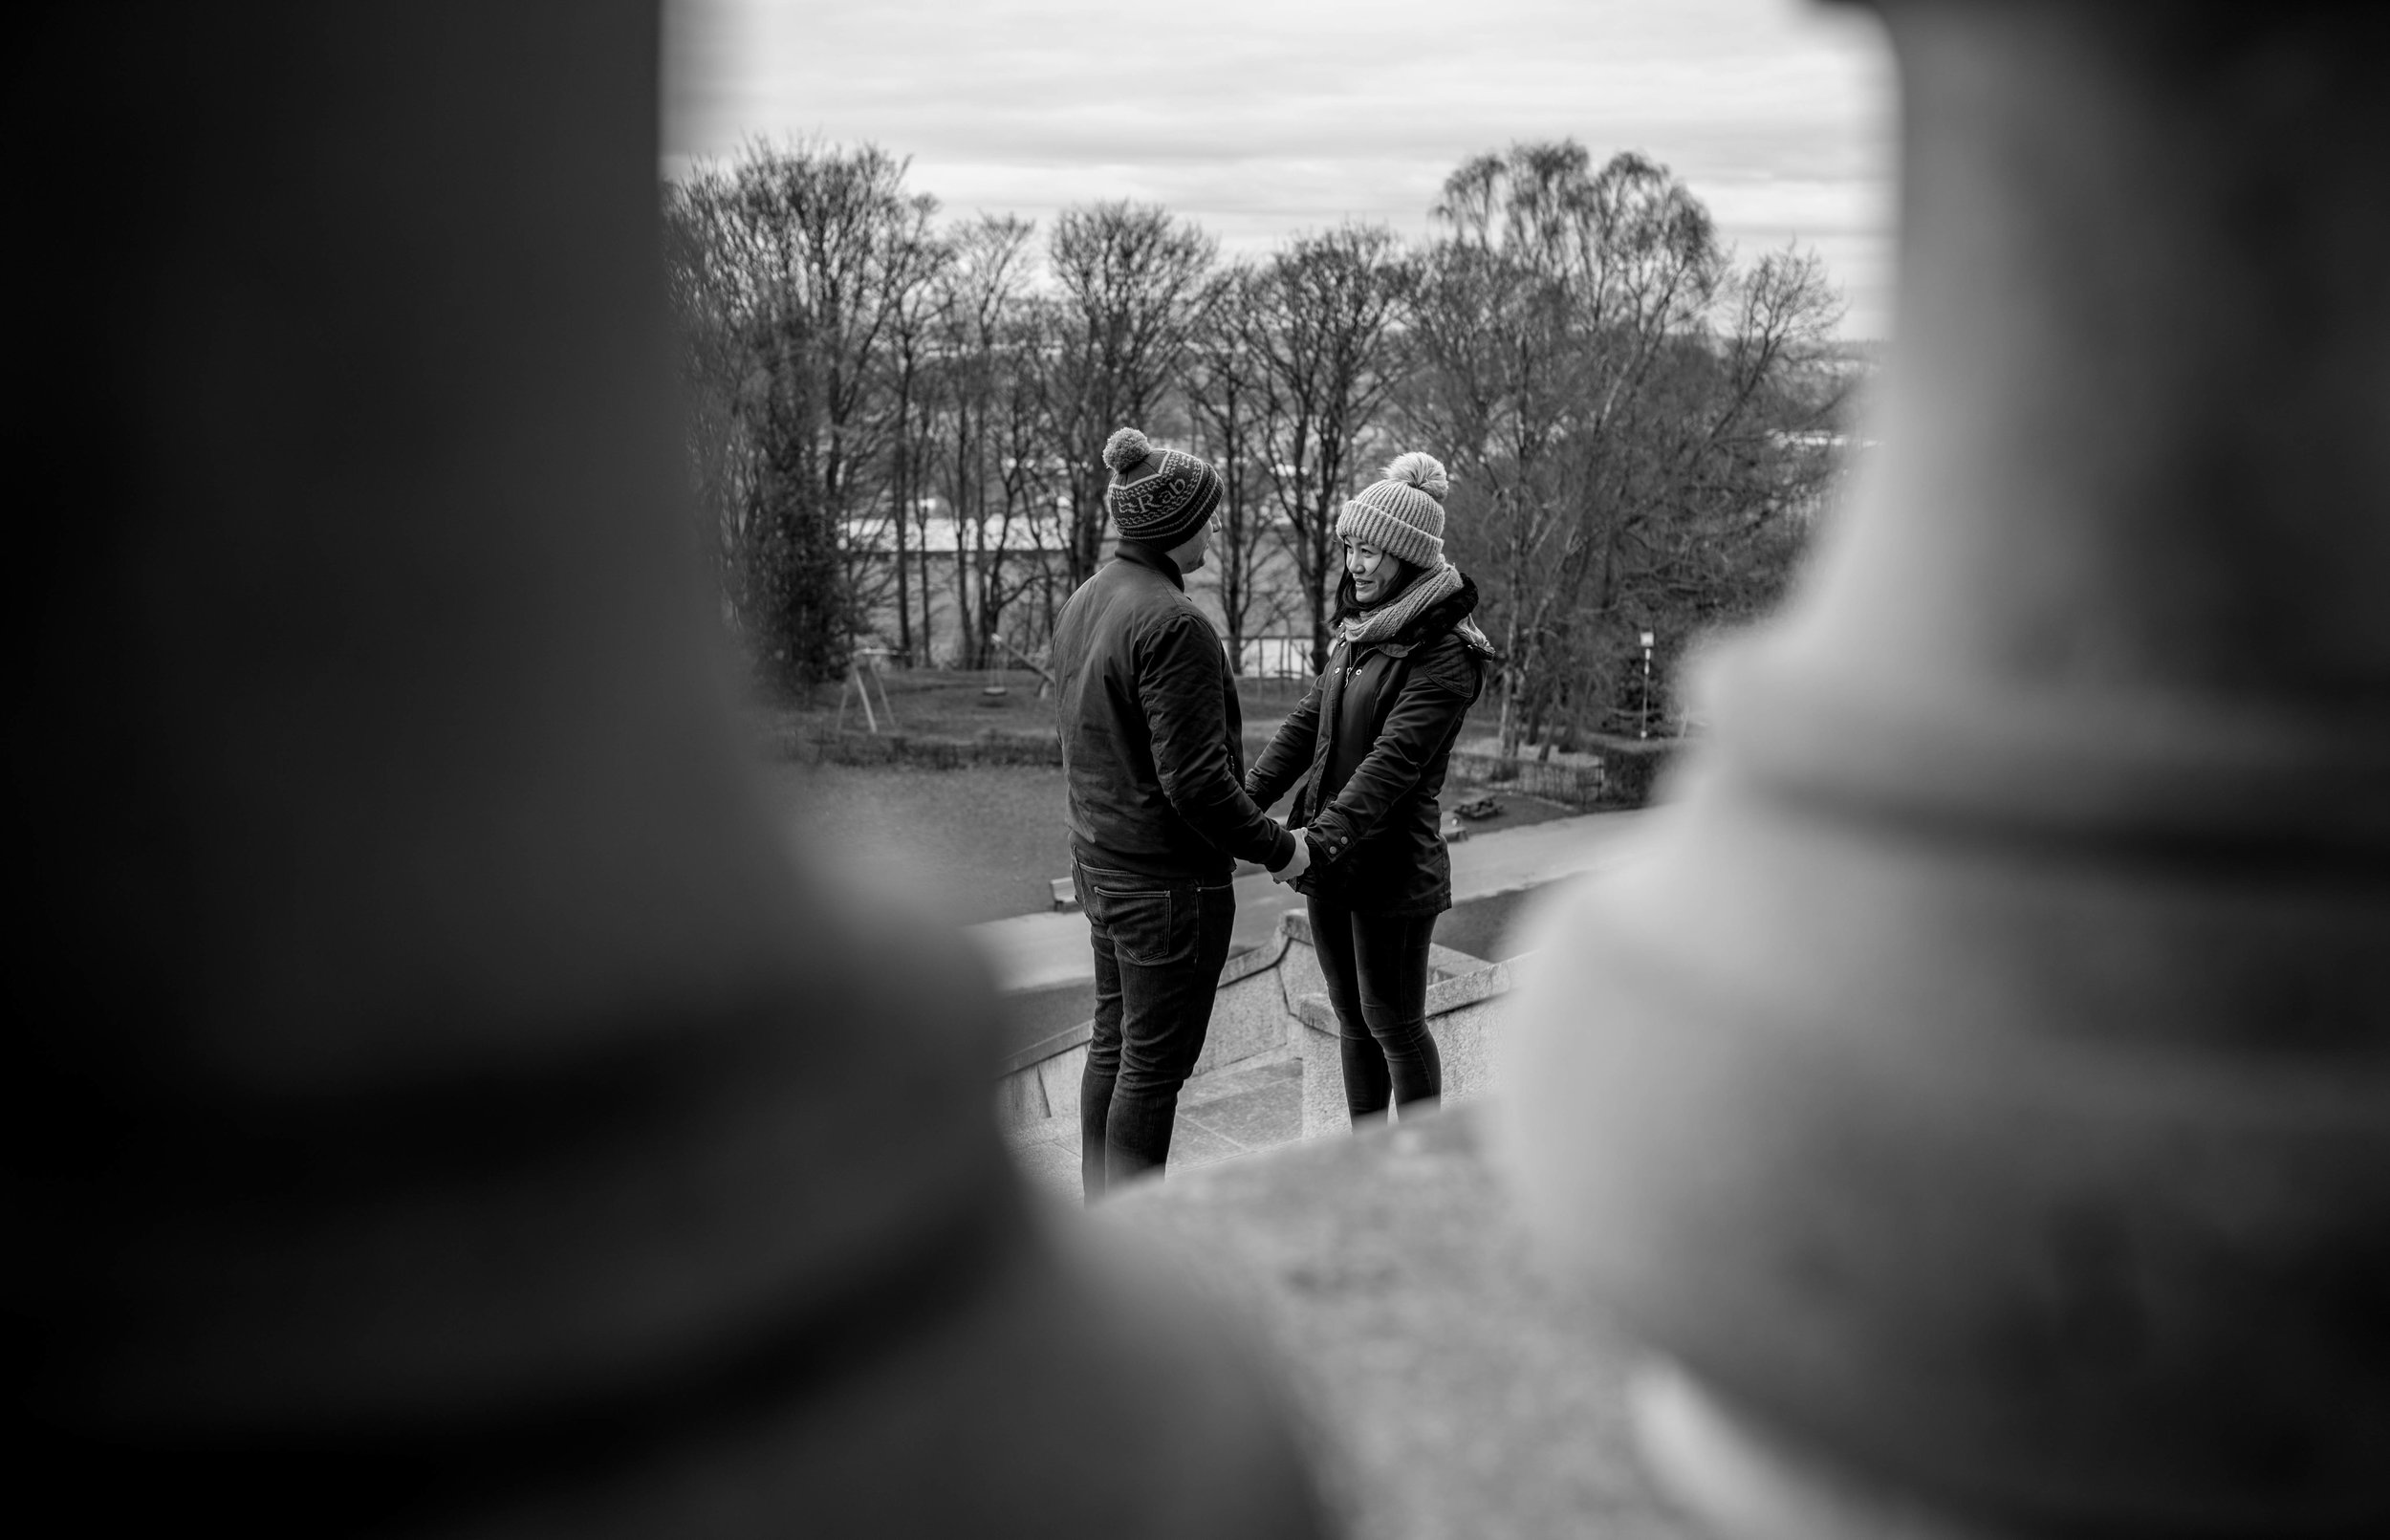 The bride and groom stand on the steps of the Ashton Memorial in Lancaster, looking at each other through stone pillars.